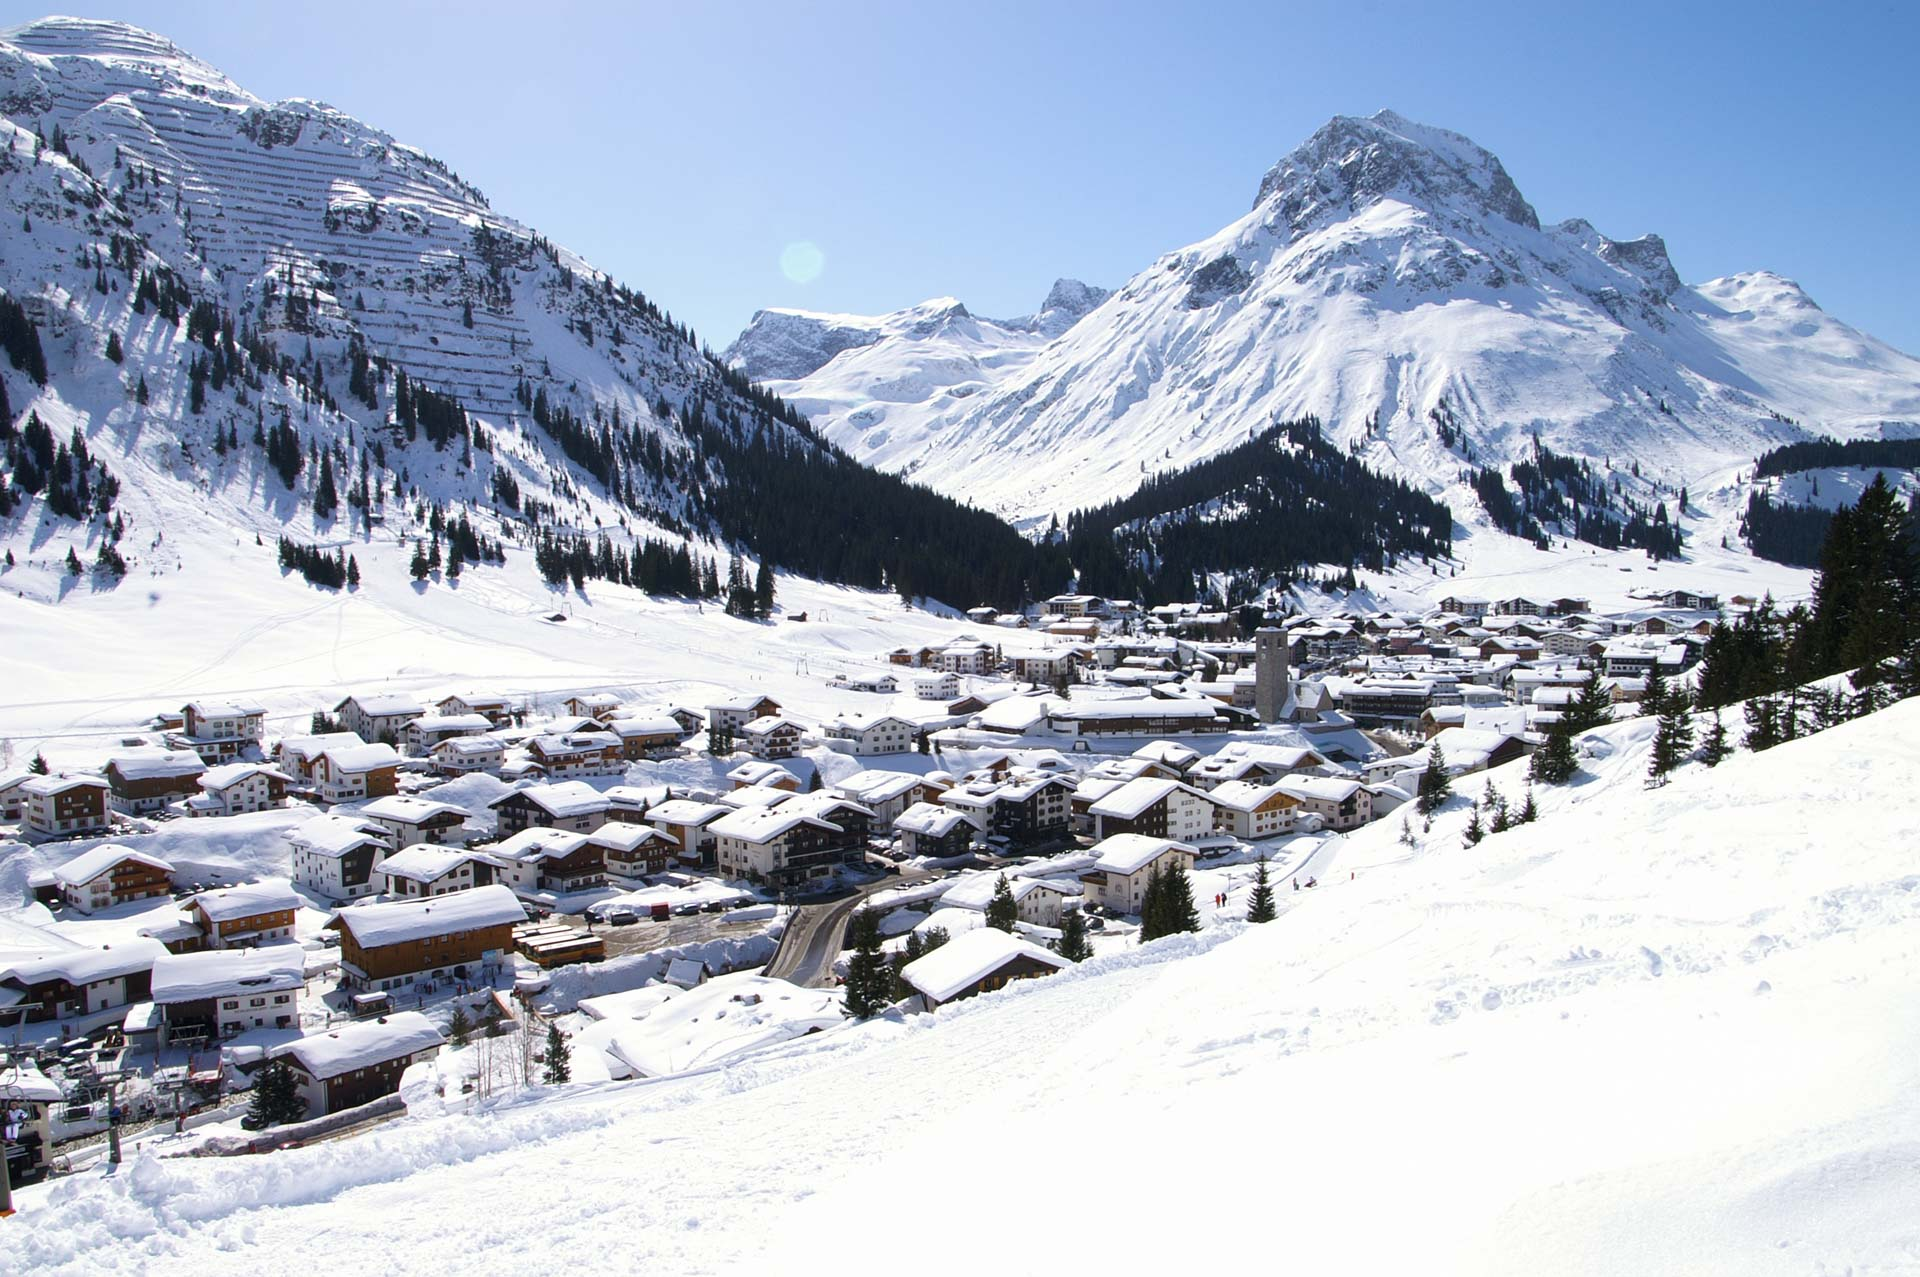 Two dramatic snow covered mountains rise up behind the beautiful Alpine ski resort of Lech am Arlberg